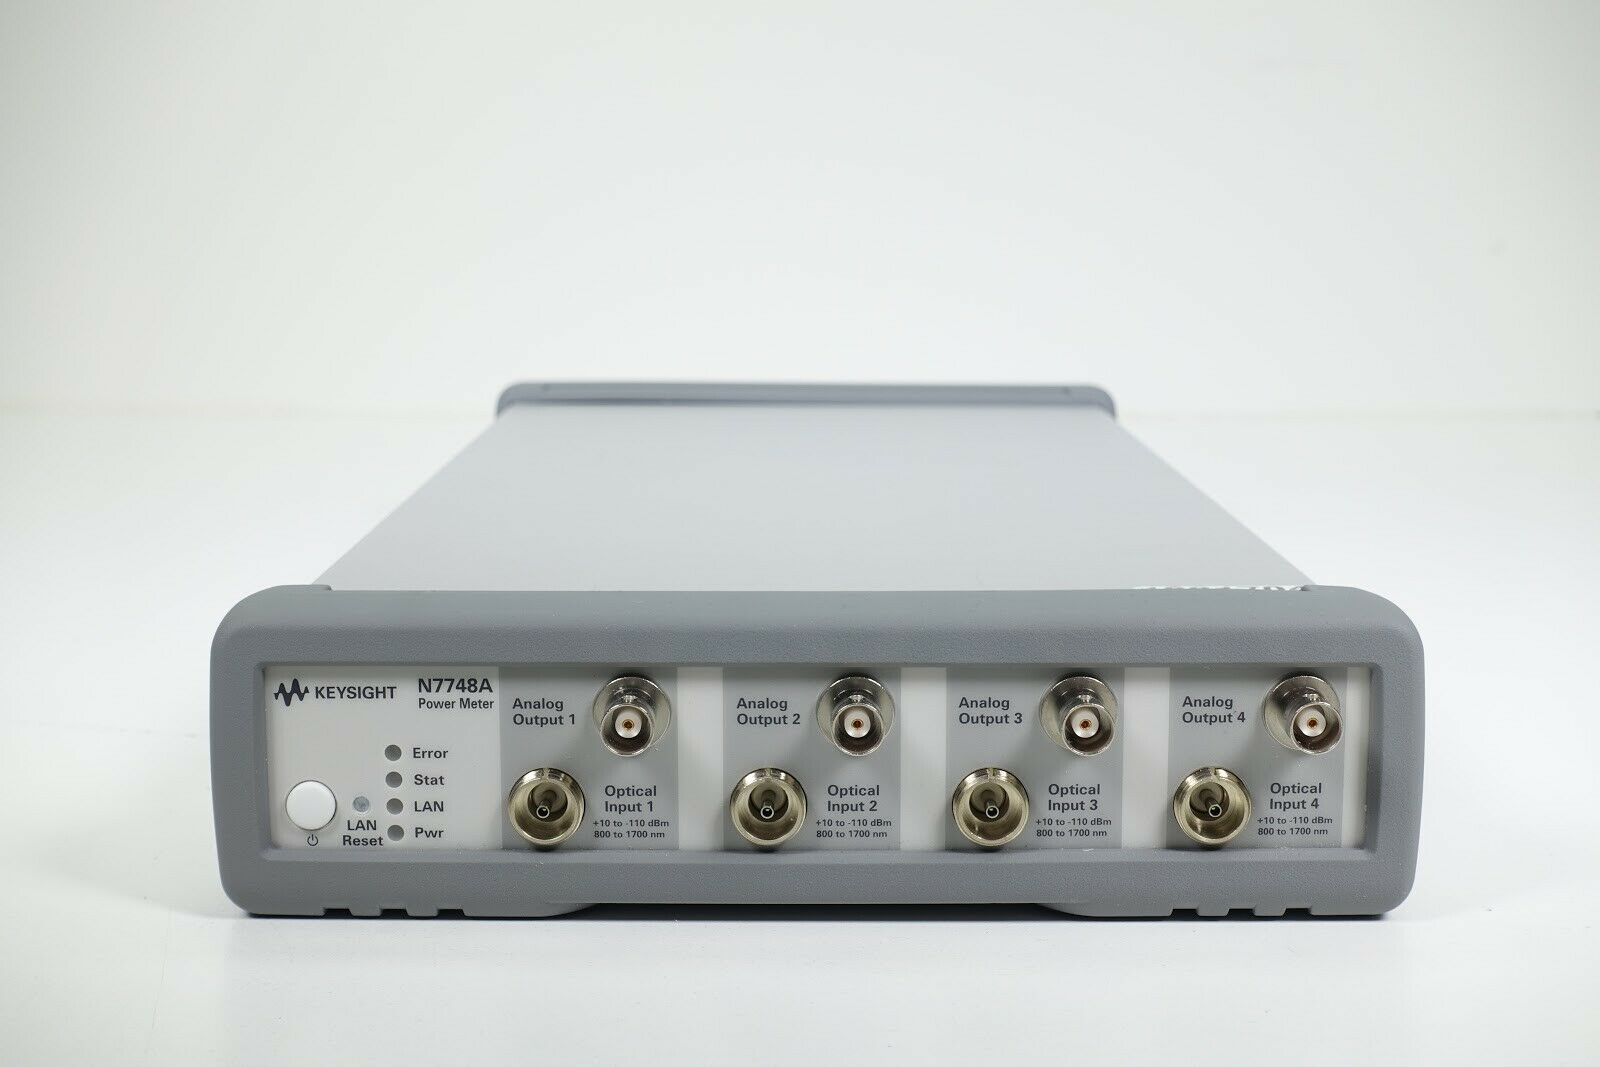 Keysight N7748A Optical High Performance Power Meter / 4 Channel